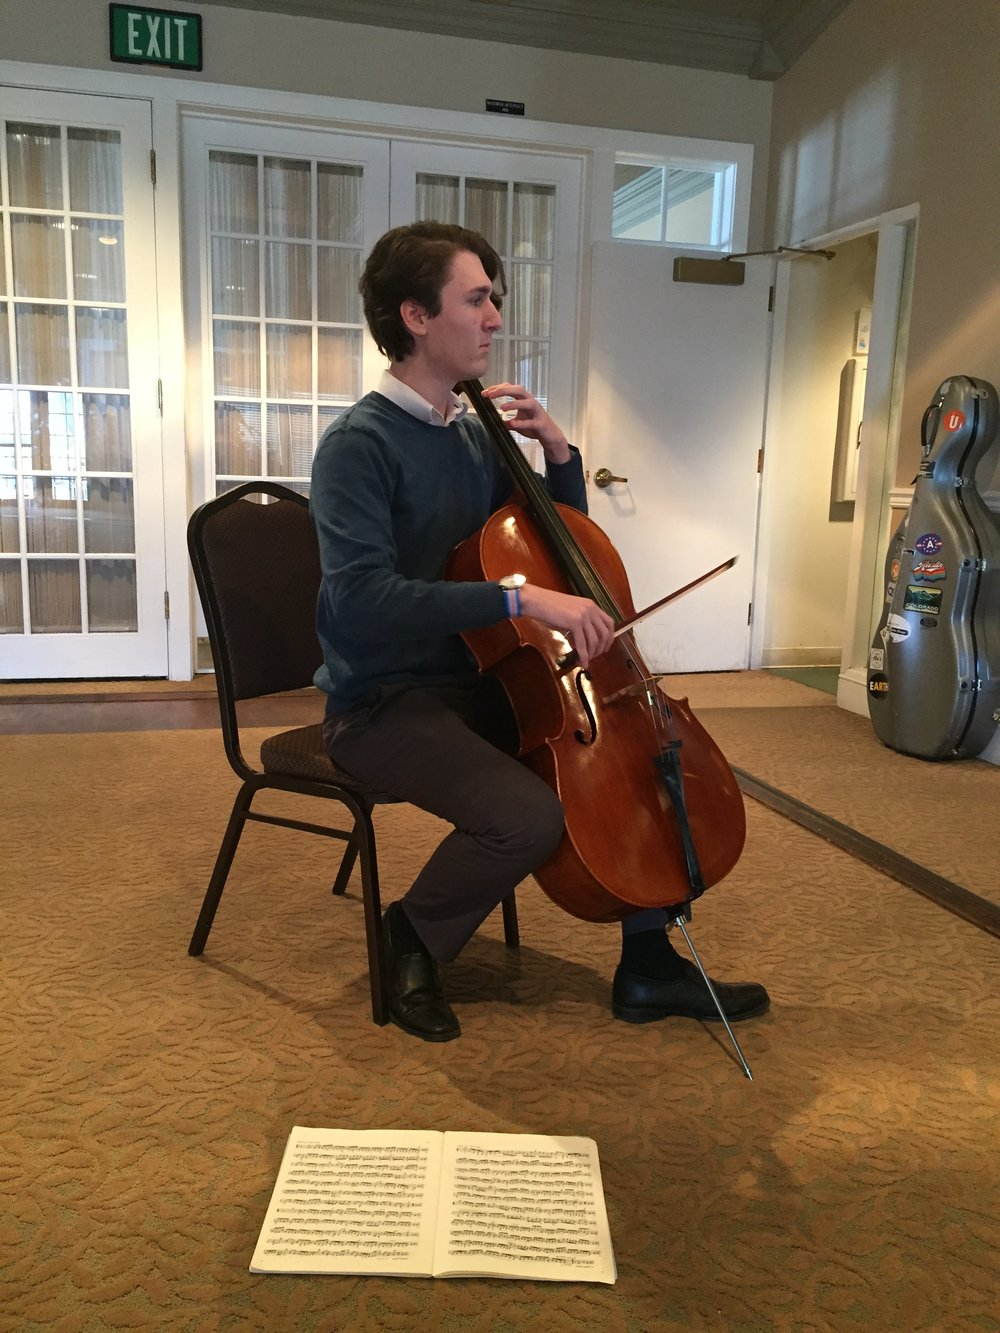 Alex Smith providing cello music during our social time.